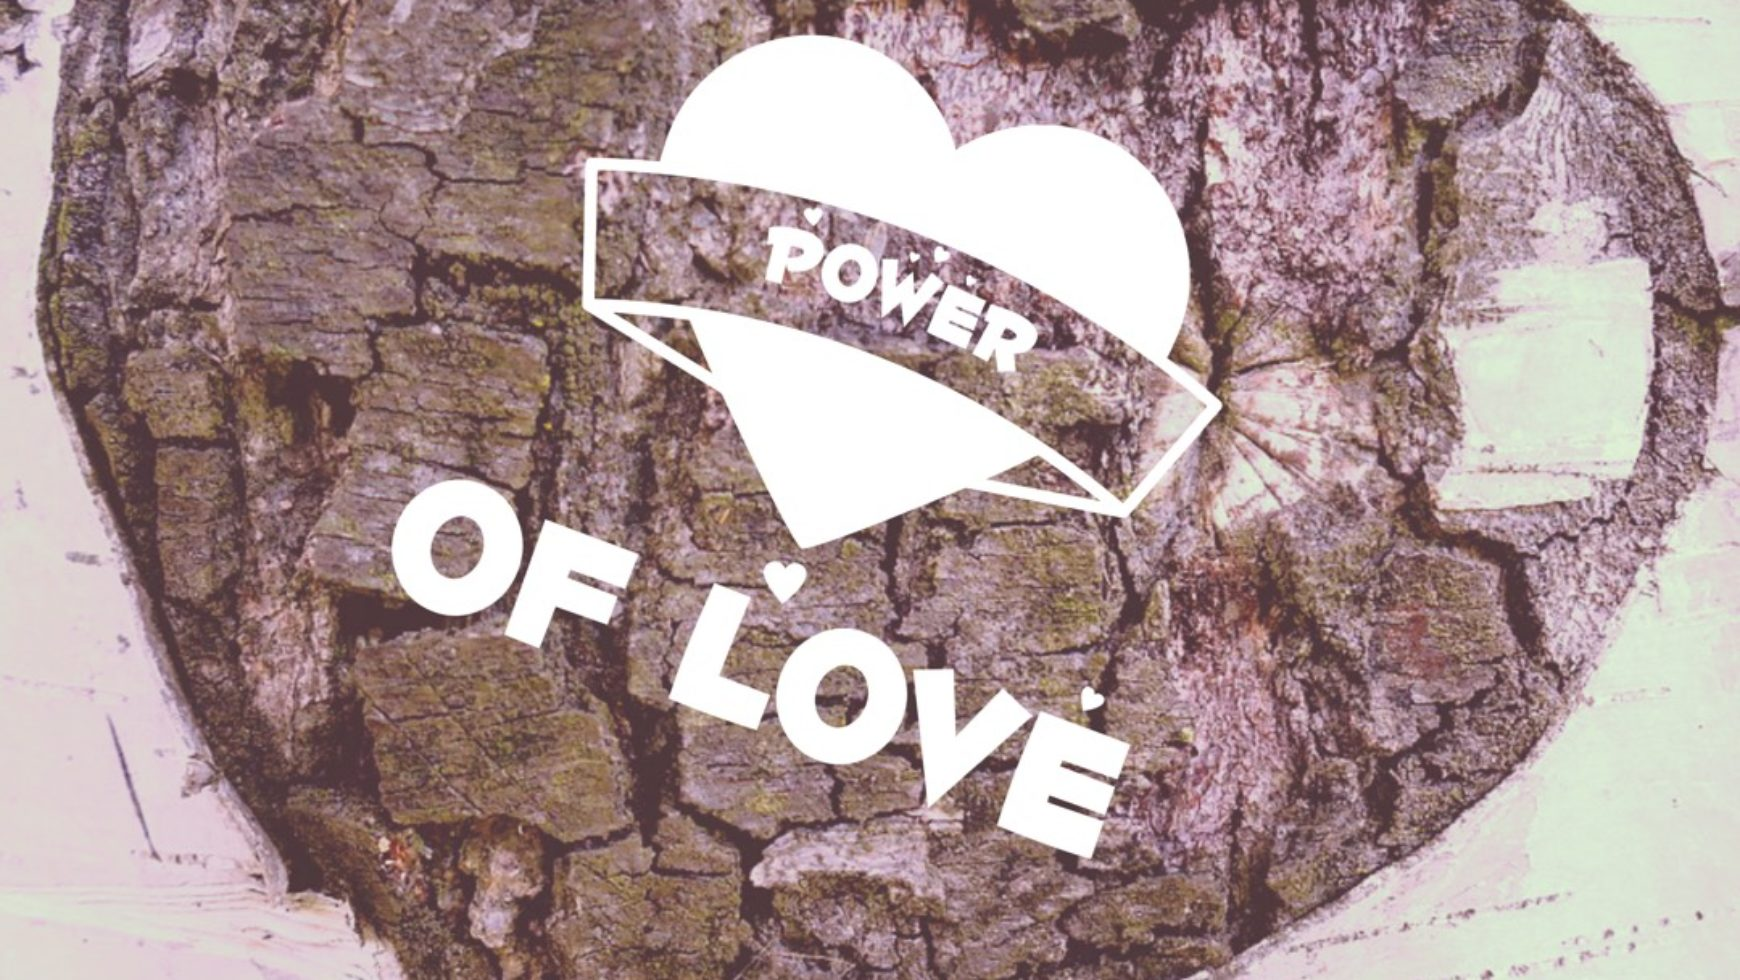 The power of love in us